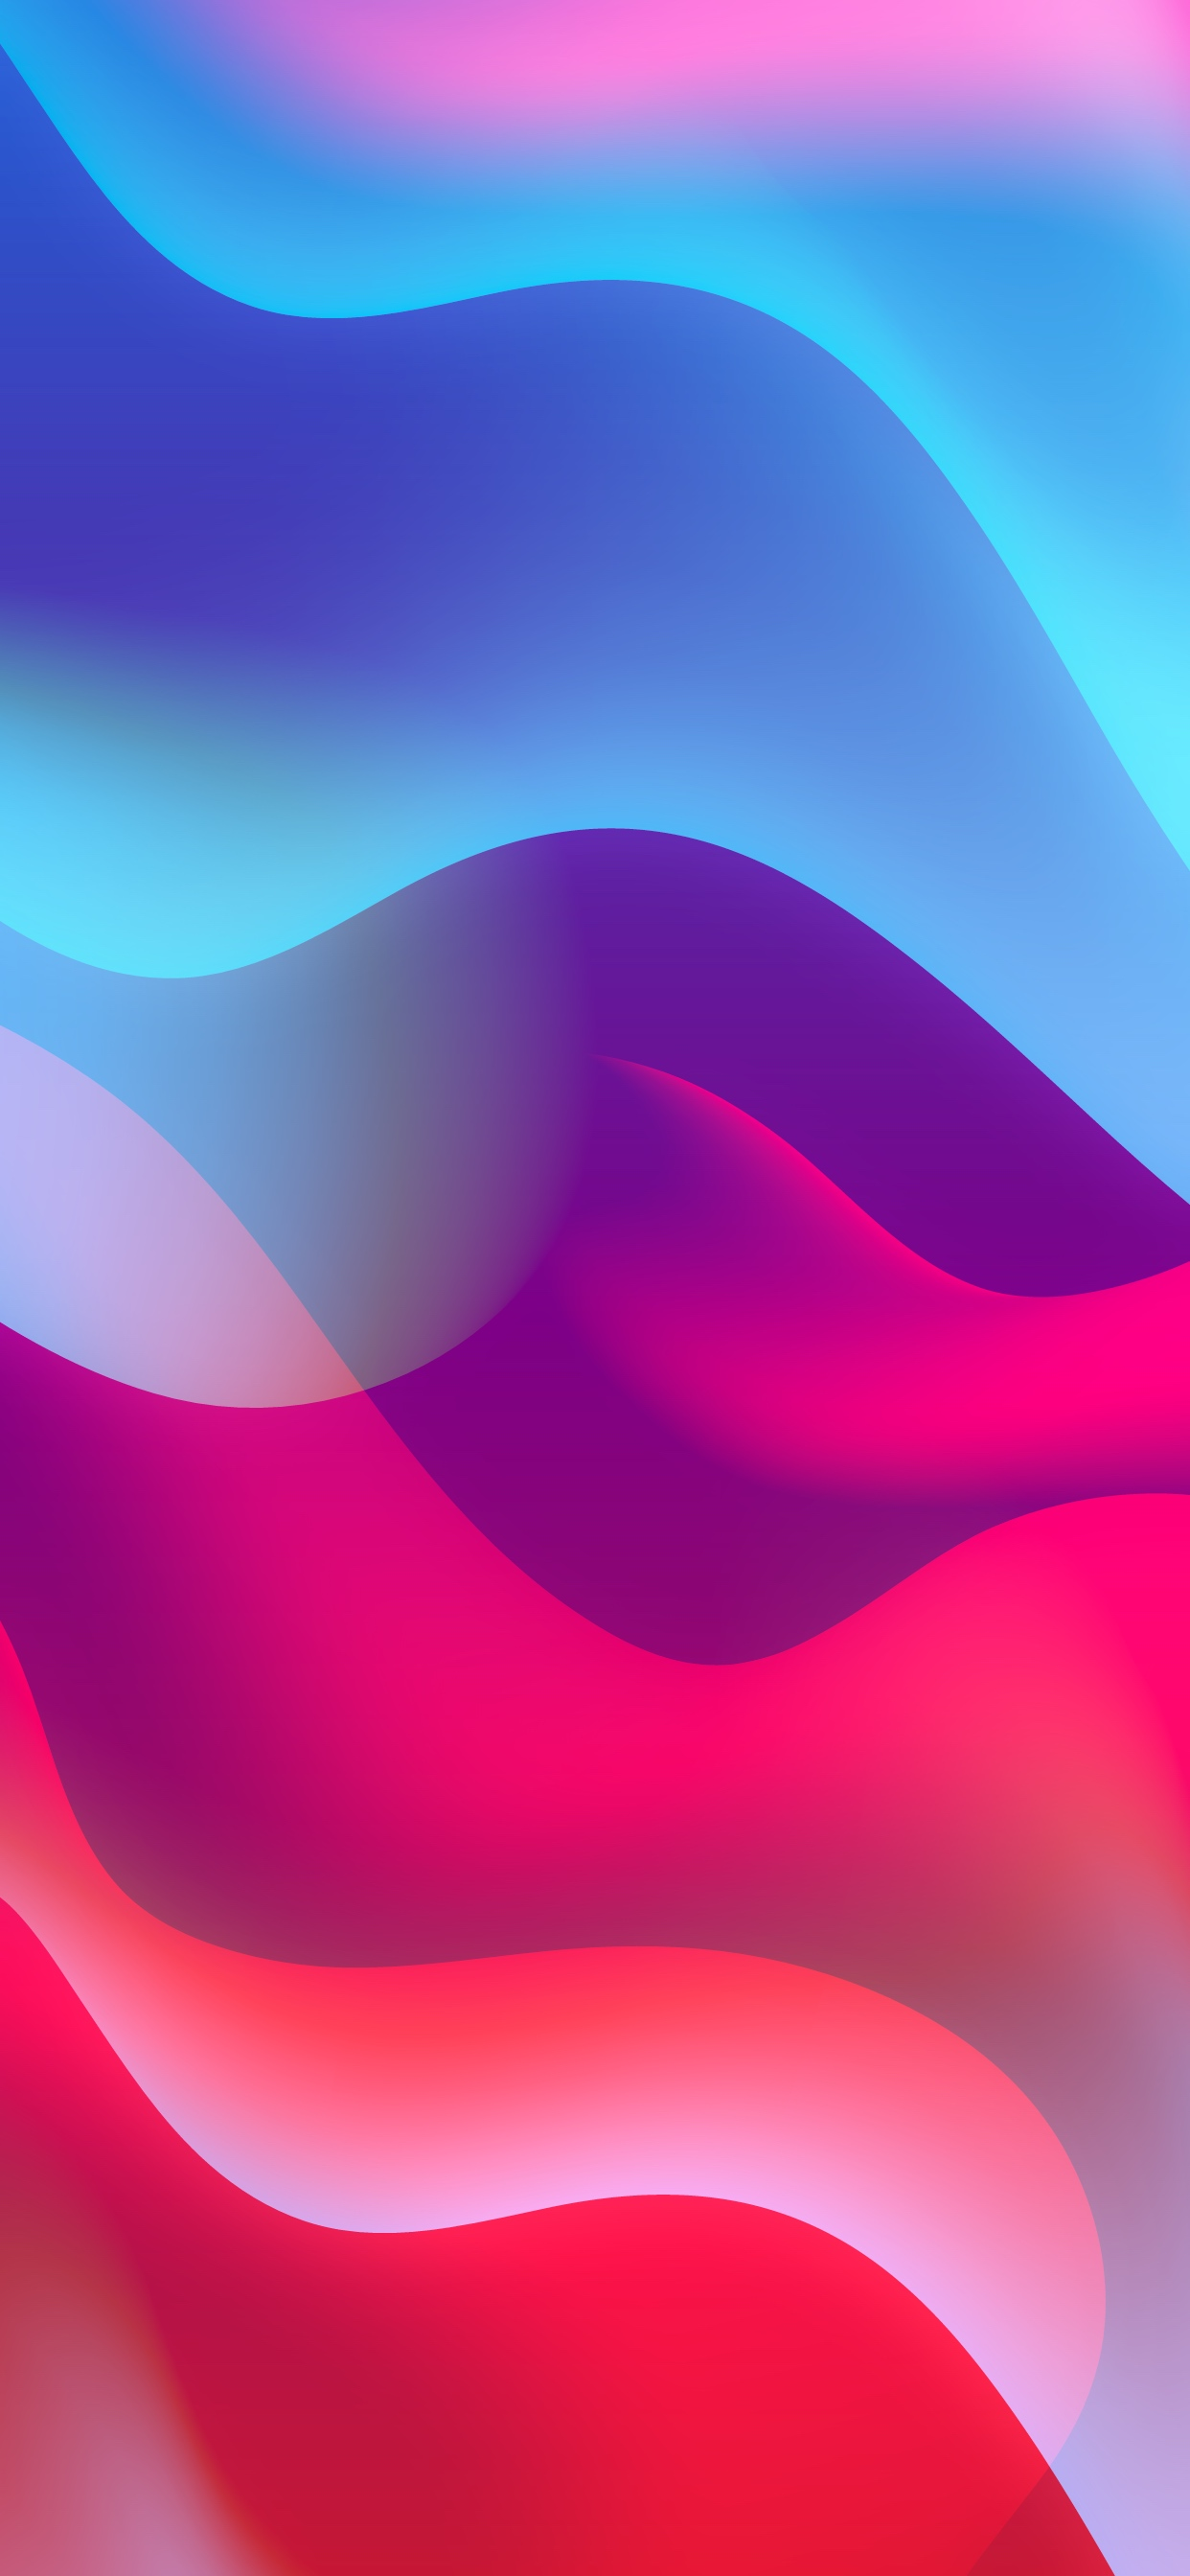 Gradient waves evgeniyzemelko